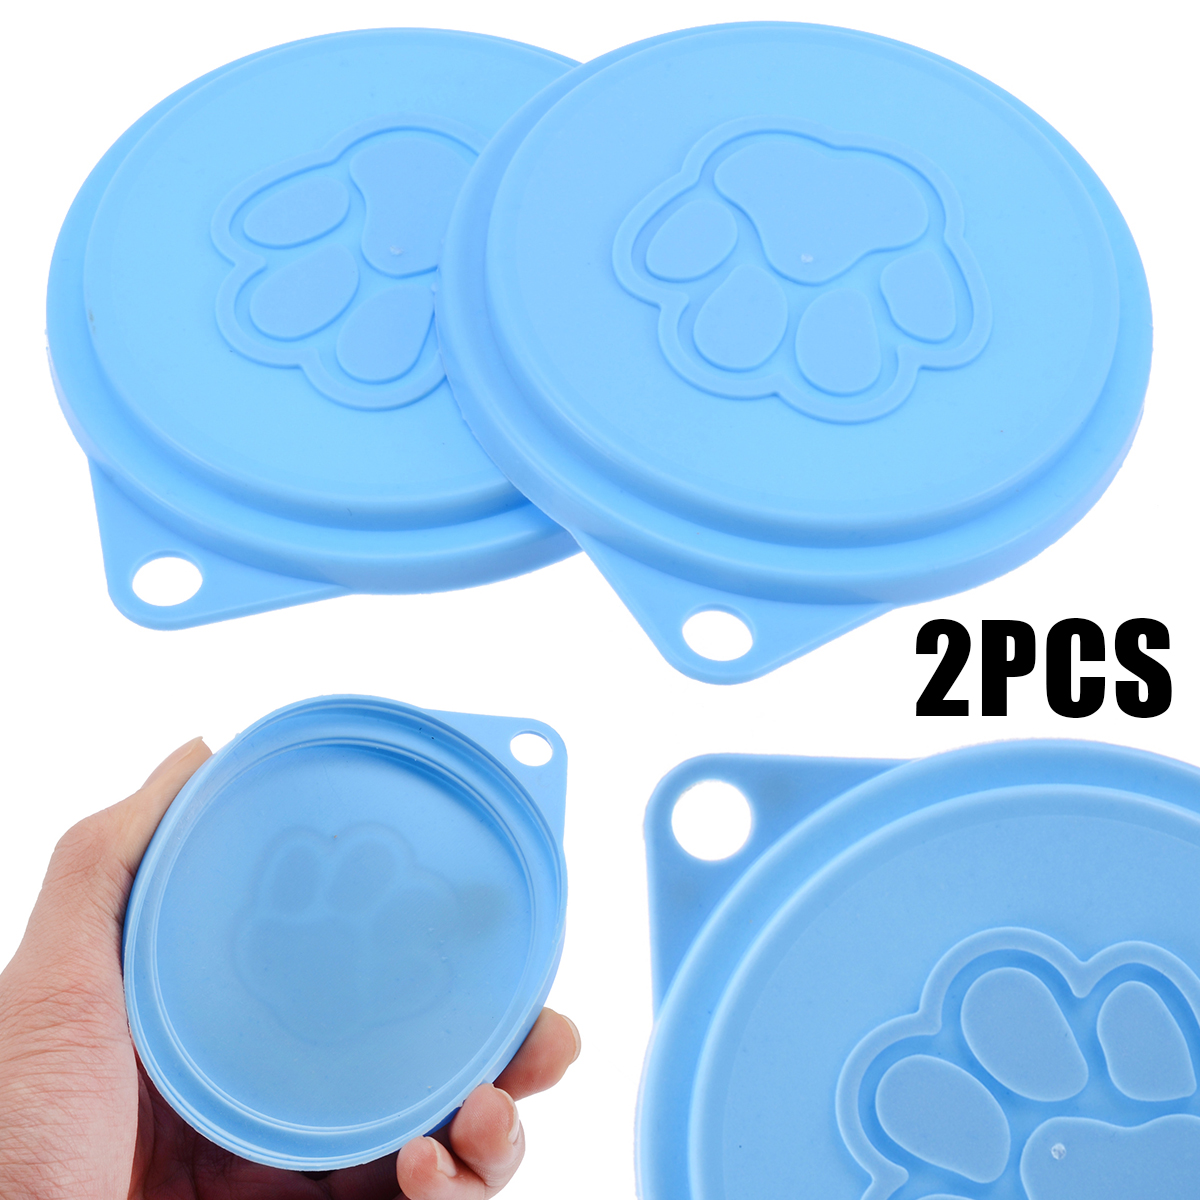 2pcs/set Reusable Pet Food Storage Can Tin Cover Lid Top Cap For Puppy Dog Cat Random Color